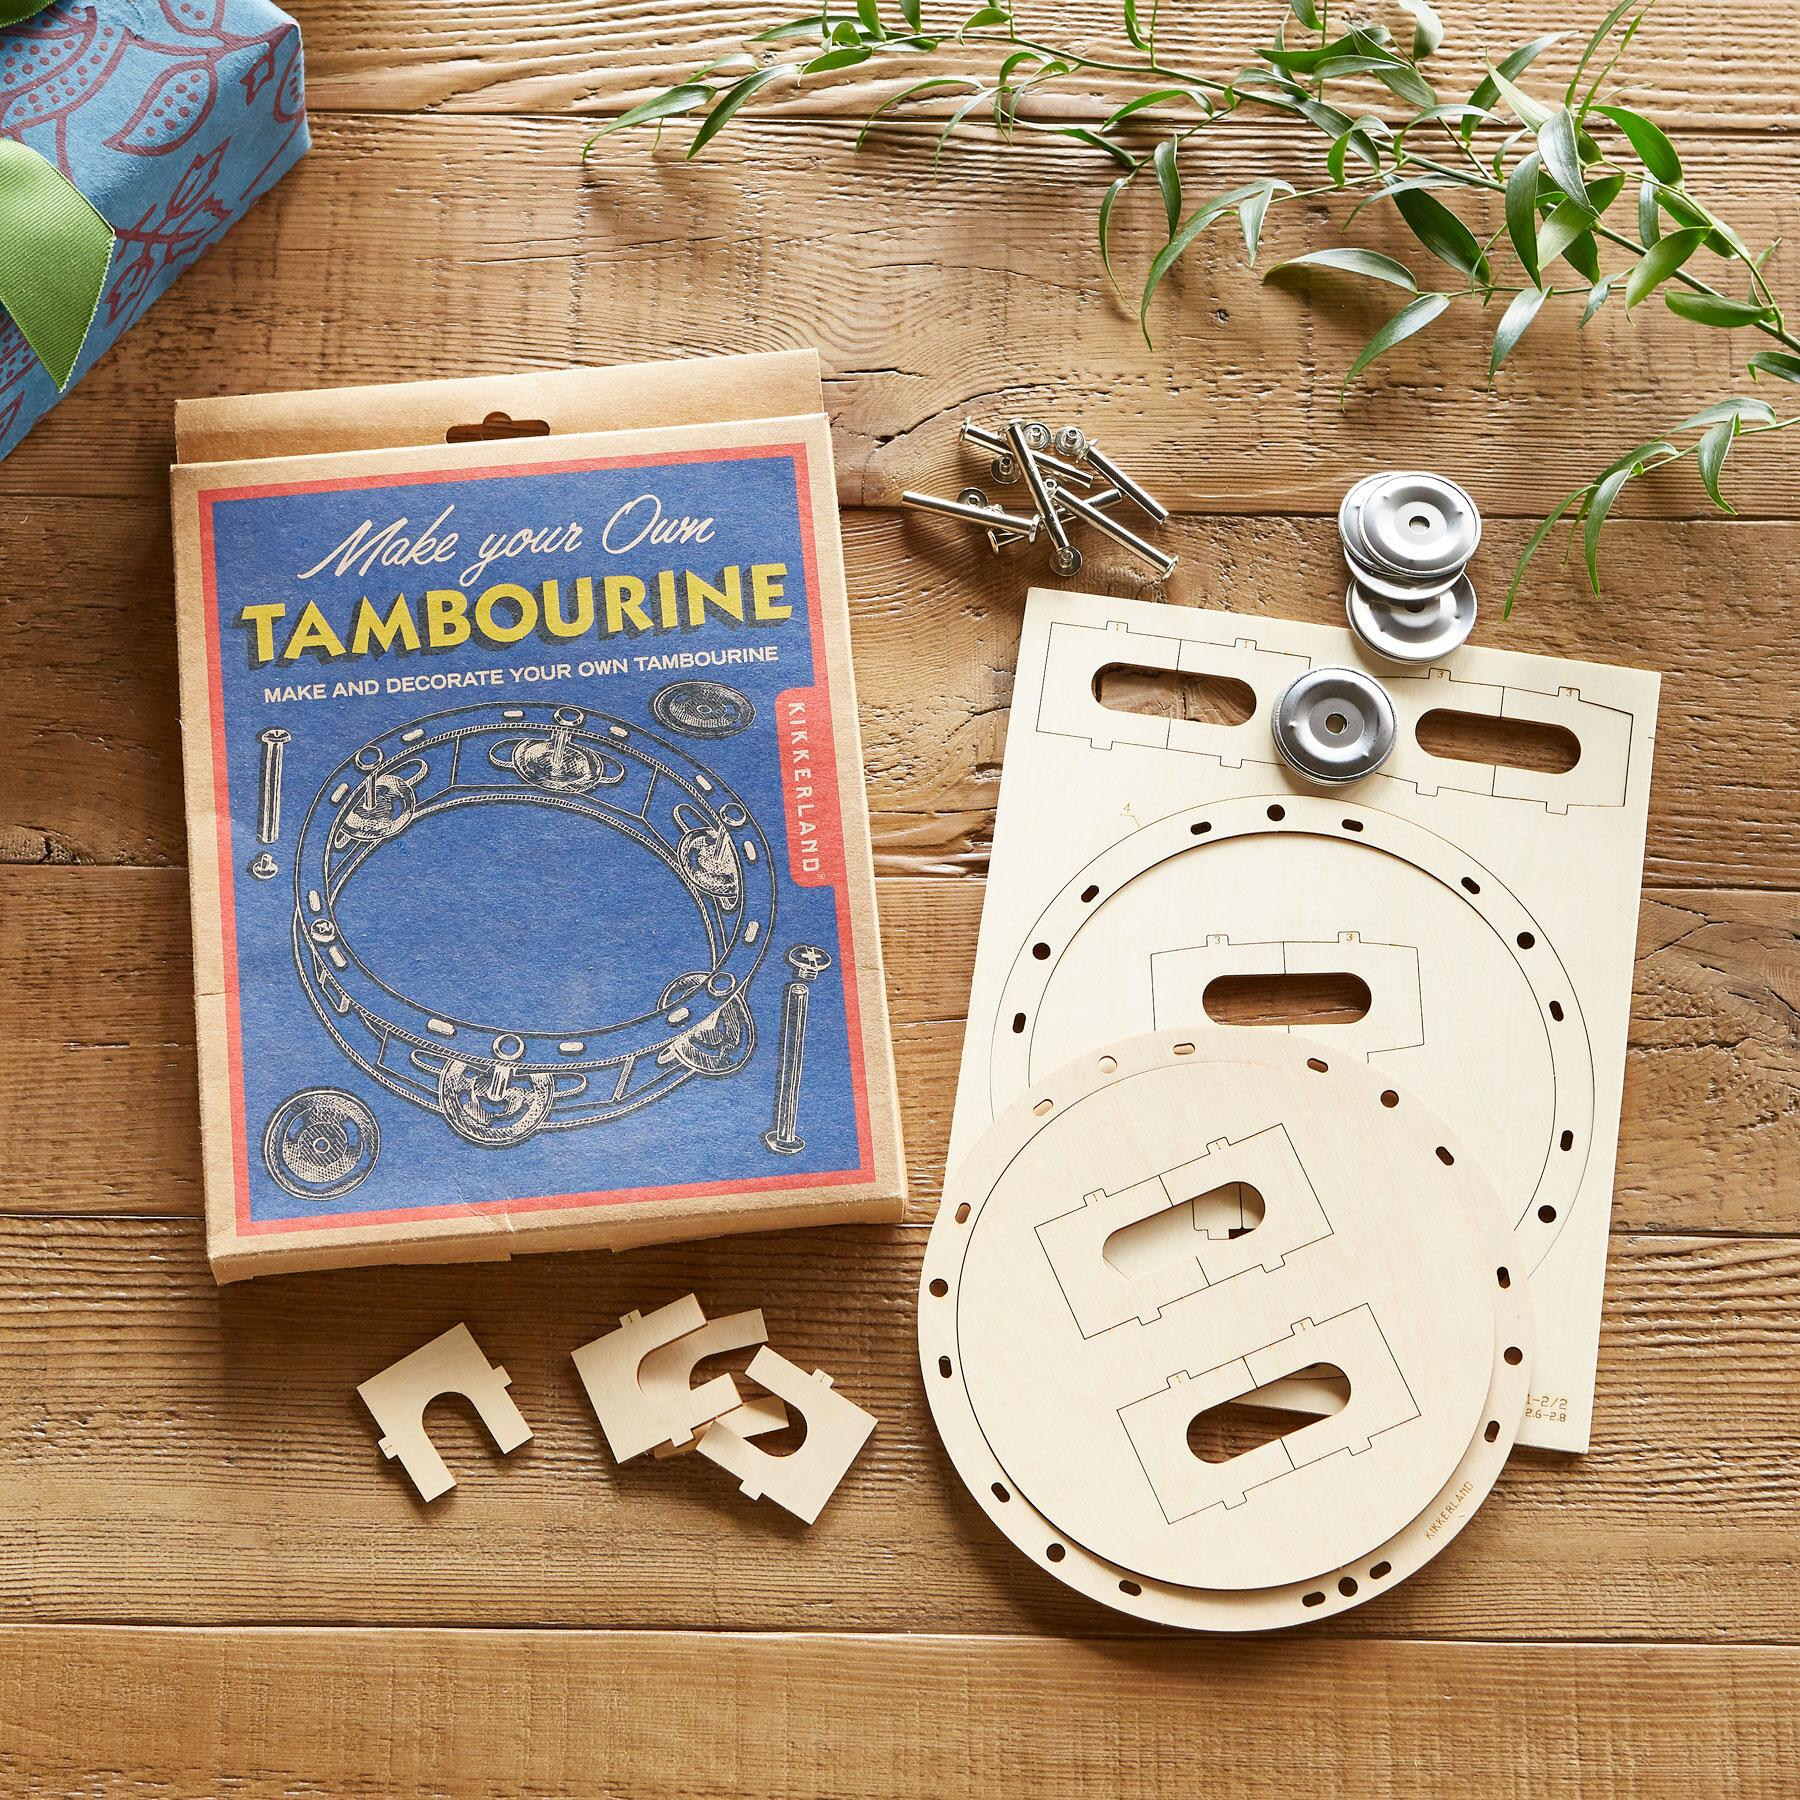 MAKE YOUR OWN TAMBOURINE: View 2